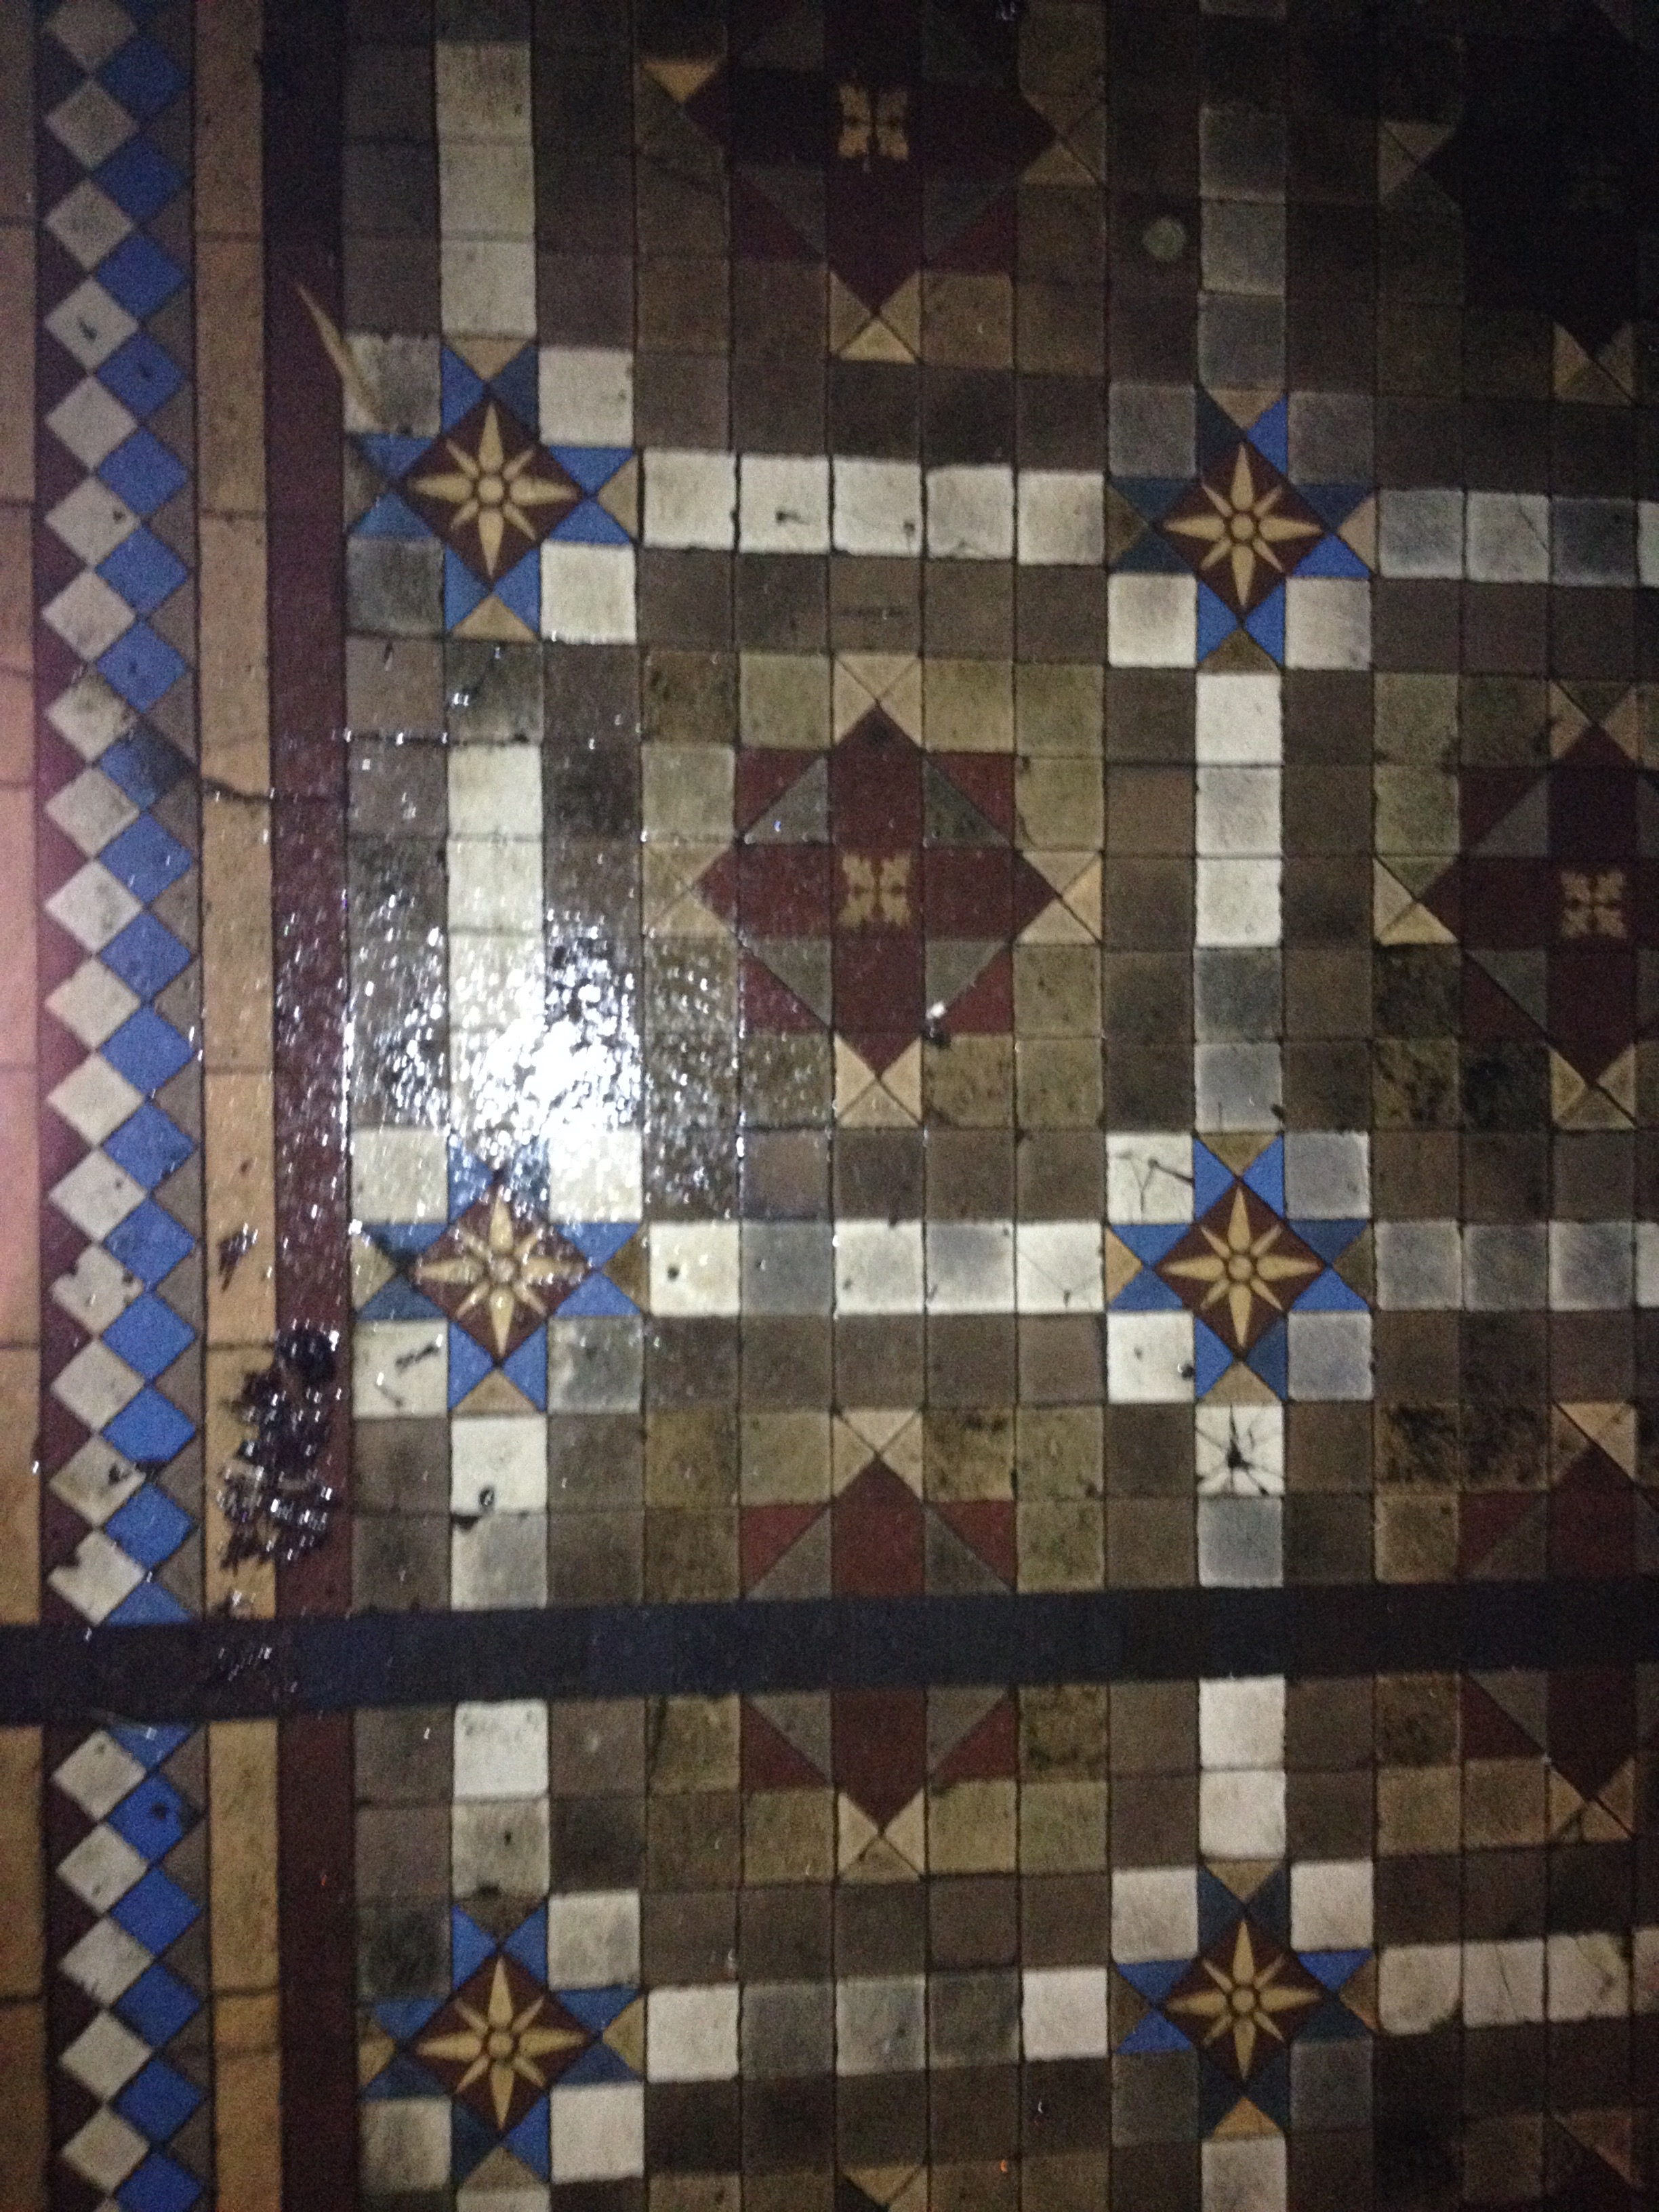 It started with my phone... - Back in 2014, I used my phone to take this rather cruddy photo of some tiles in the rain. Can't remember the exact details of why I stopped, but I must have liked the look of them and had, maybe, imbibed a little red wine. Anyway,it was a flippant photo, and I have no idea where in Hove it was taken. Fast forward three years and my photo library is now bursting at the seams with photos of tiles around Brighton and Hove. So, I thought it was time I do something with them and have been busy designing a quilt.